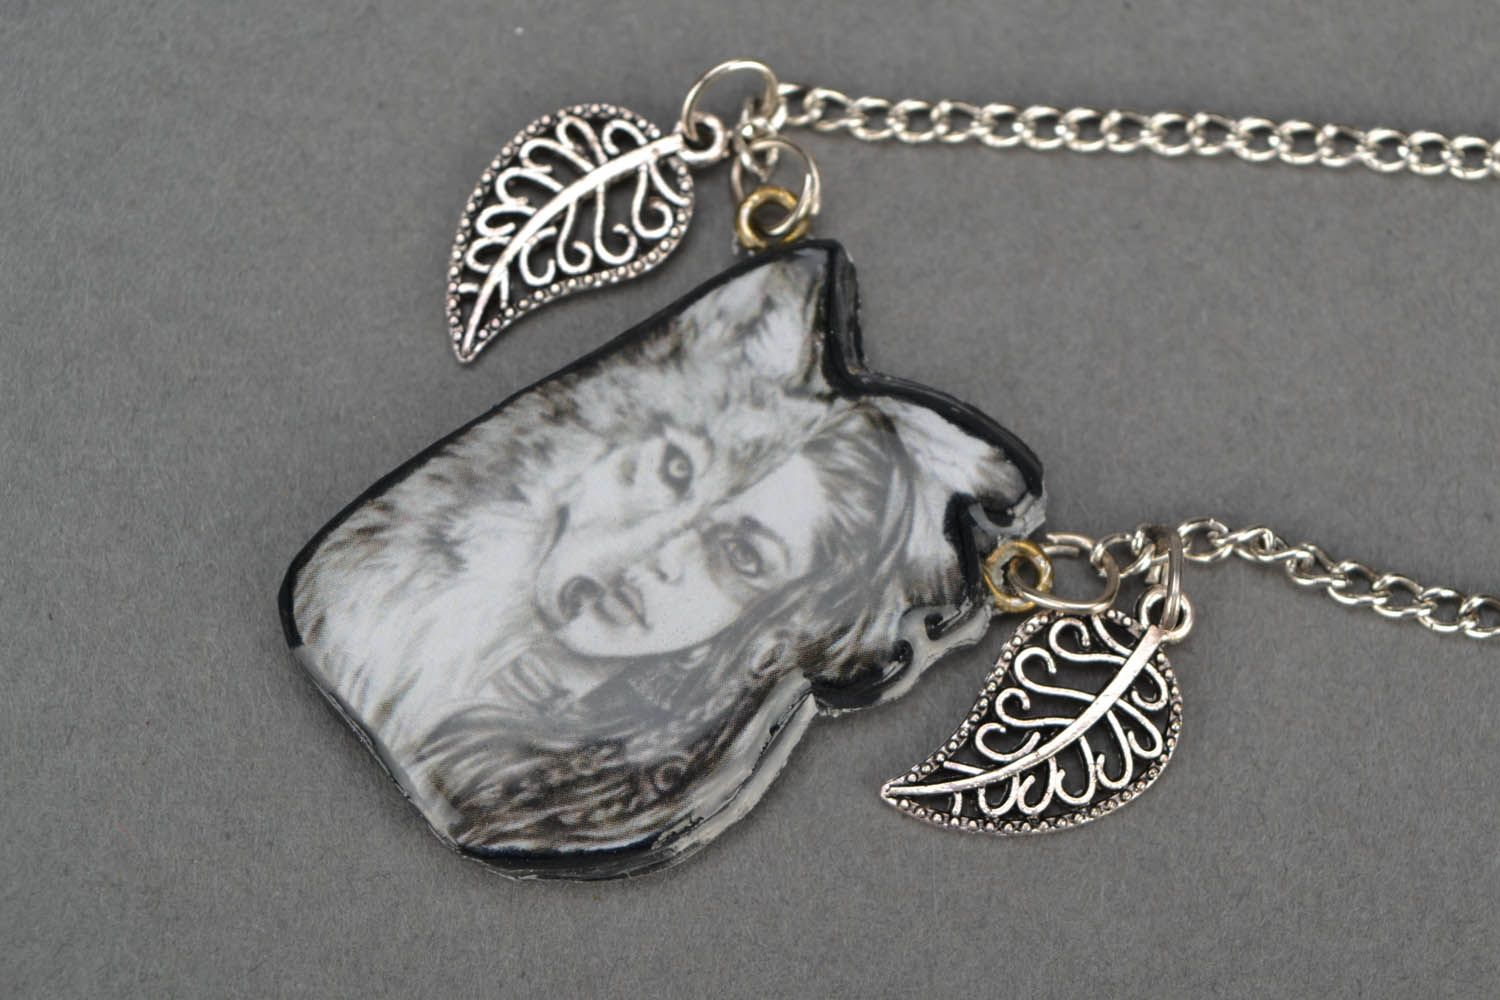 Pendant on a long metal chain photo 4